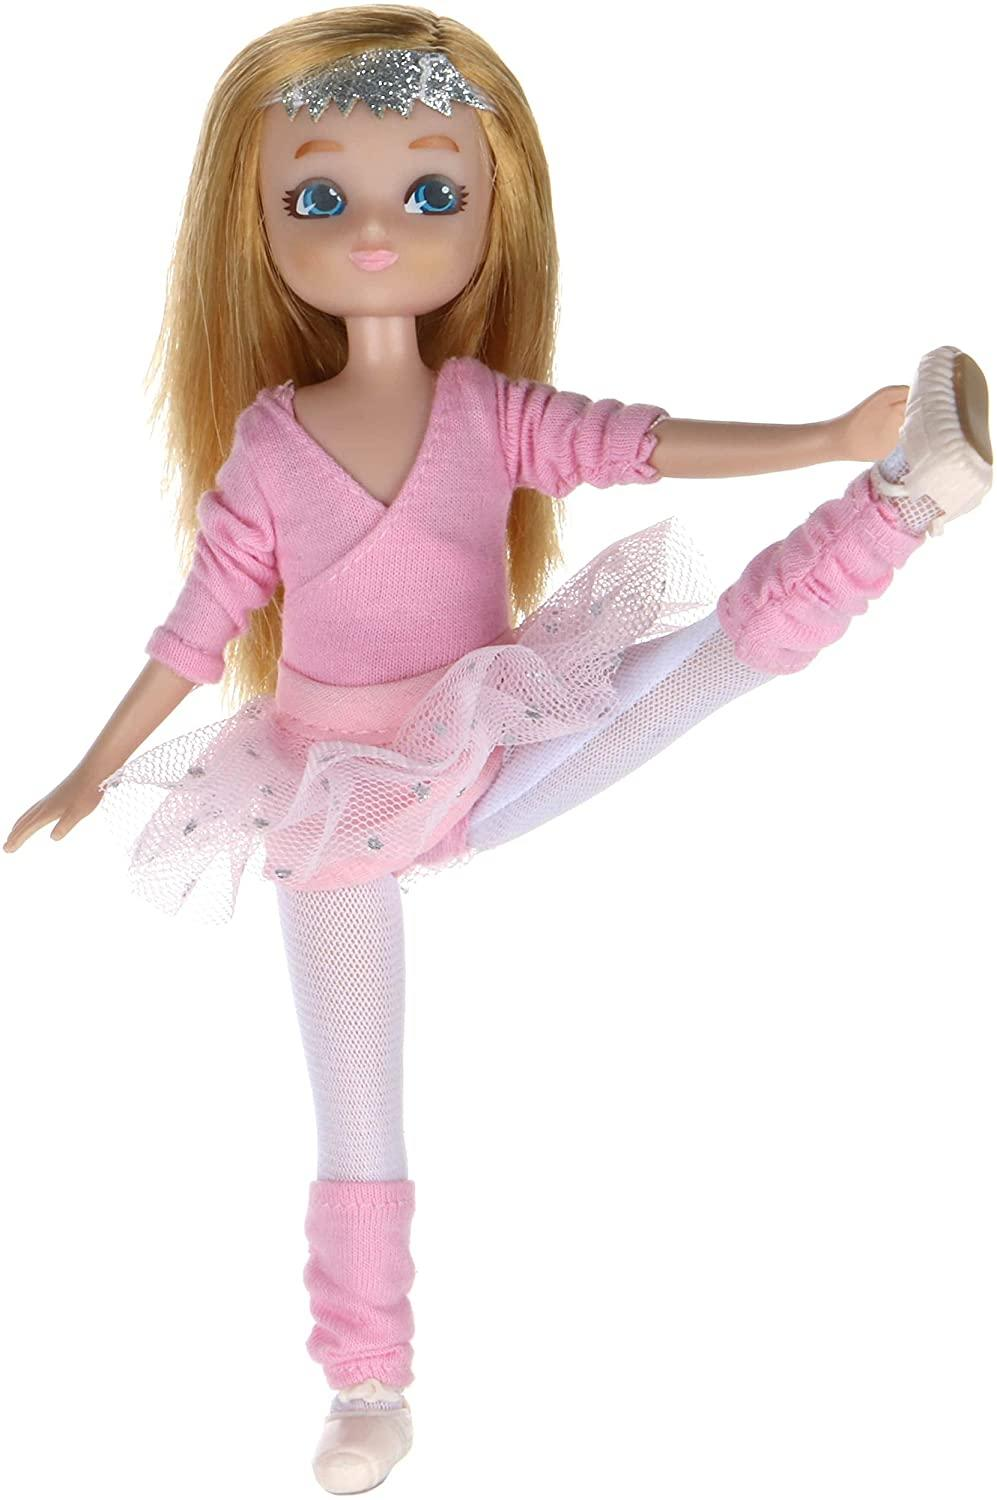 Lottie Doll Ballet Doll with pink ballet outfit including tutu, cardigan leg warners and ballet shoes.